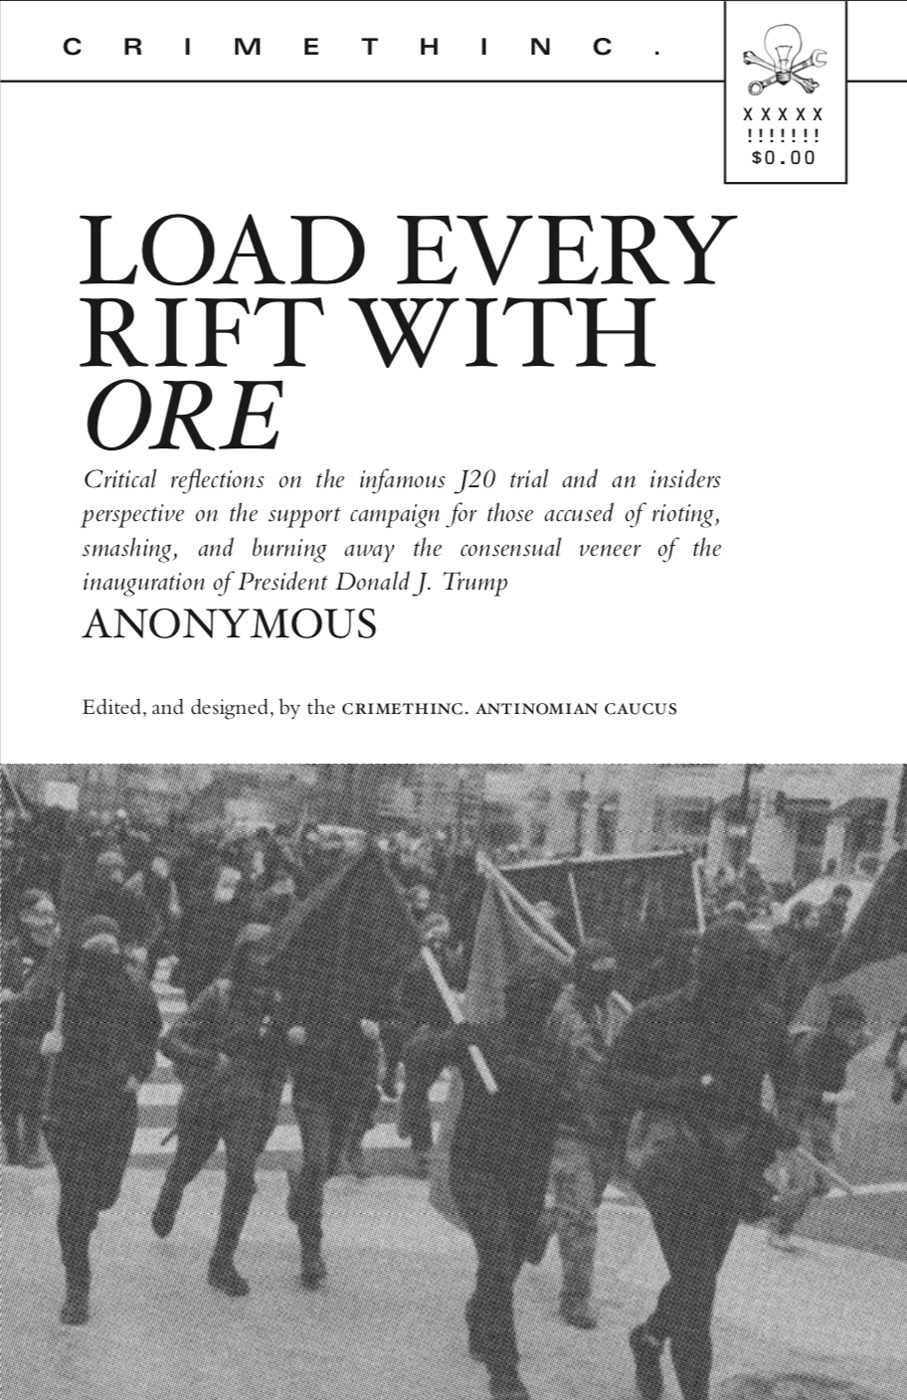 Photo of 'Load Every Rift With Ore' front cover